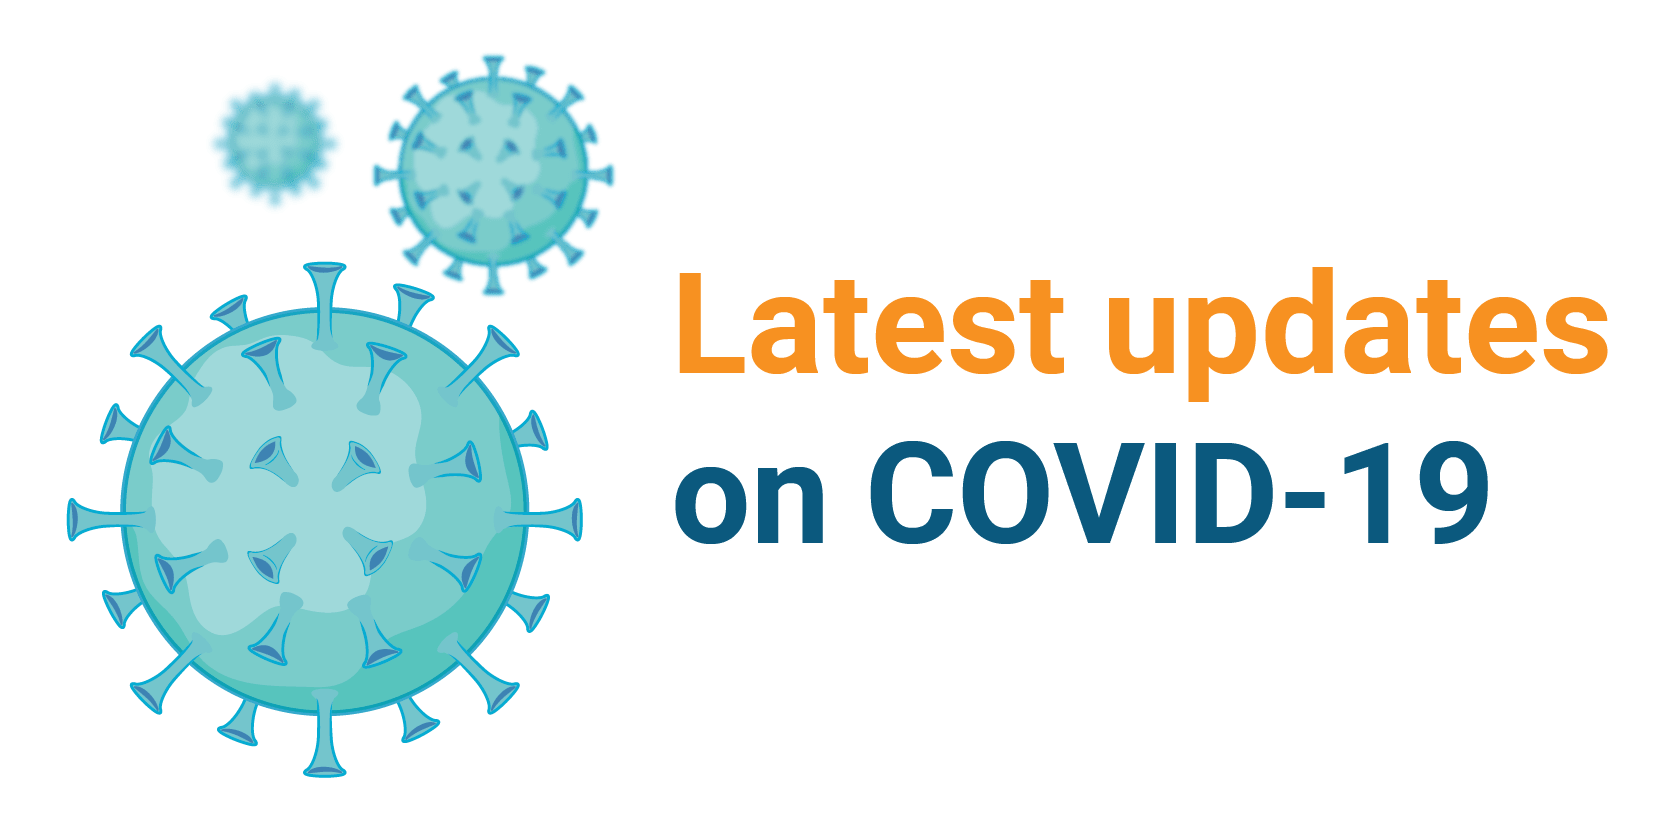 Back to latest updates on COVID-19